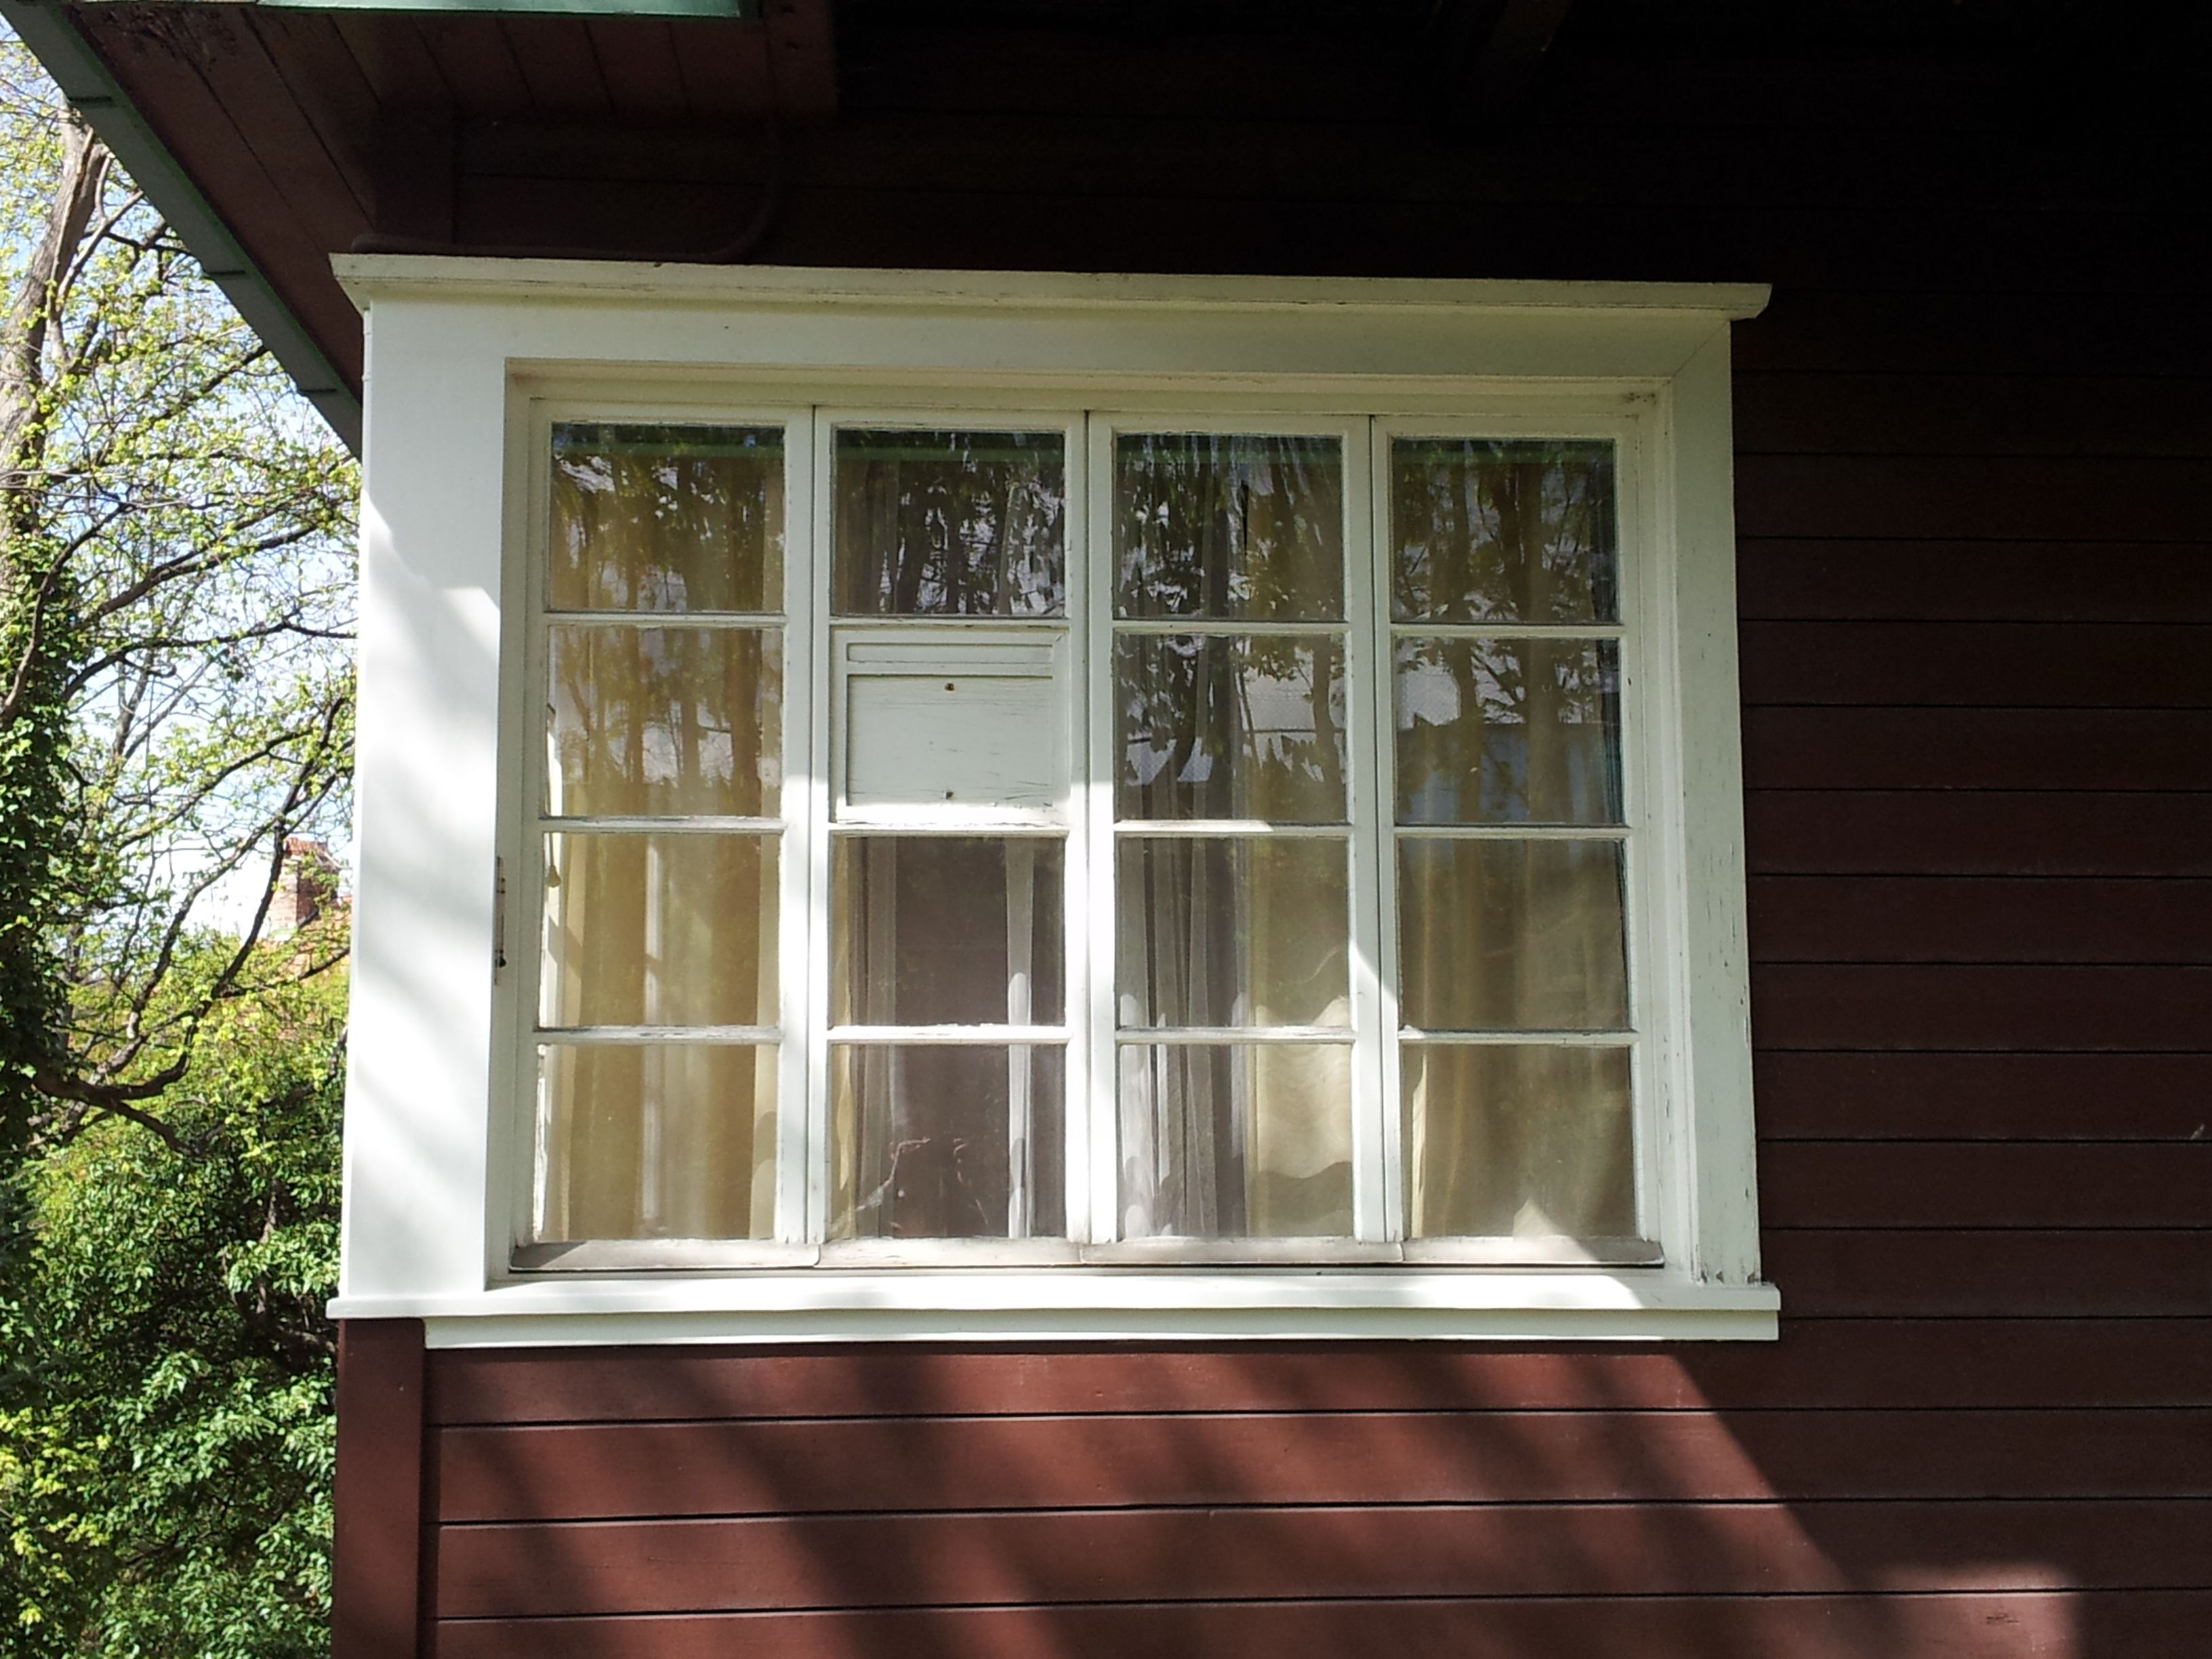 How to clean house windows - Window In Living House With 16 Separated Glass Elements And Clean White Frames